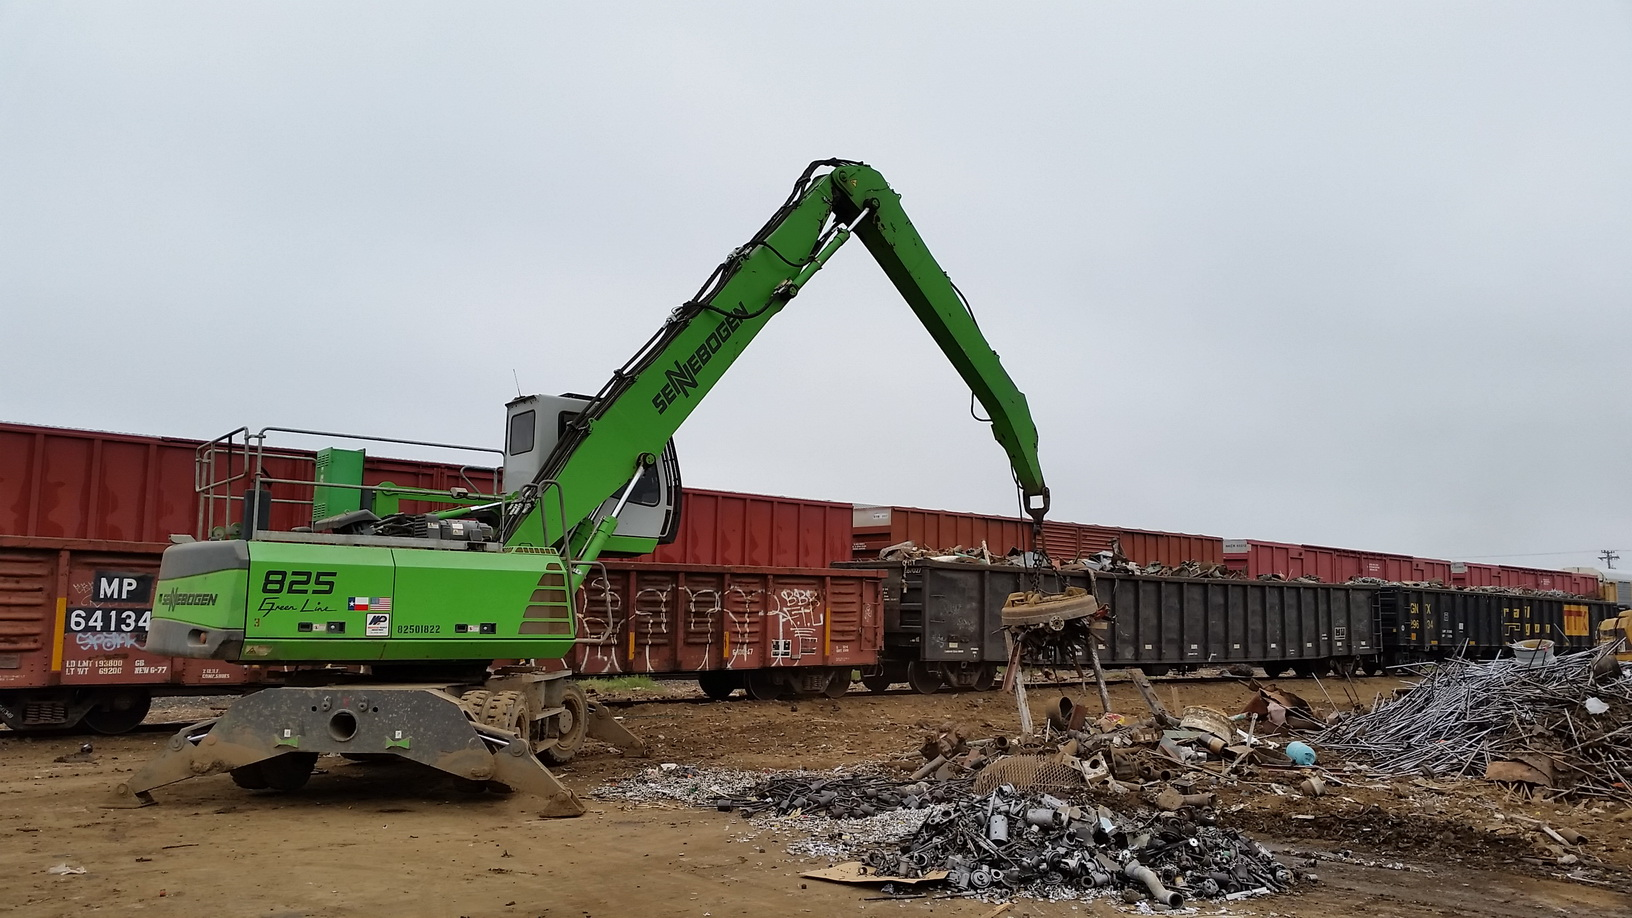 825 loading railcars in Texas.